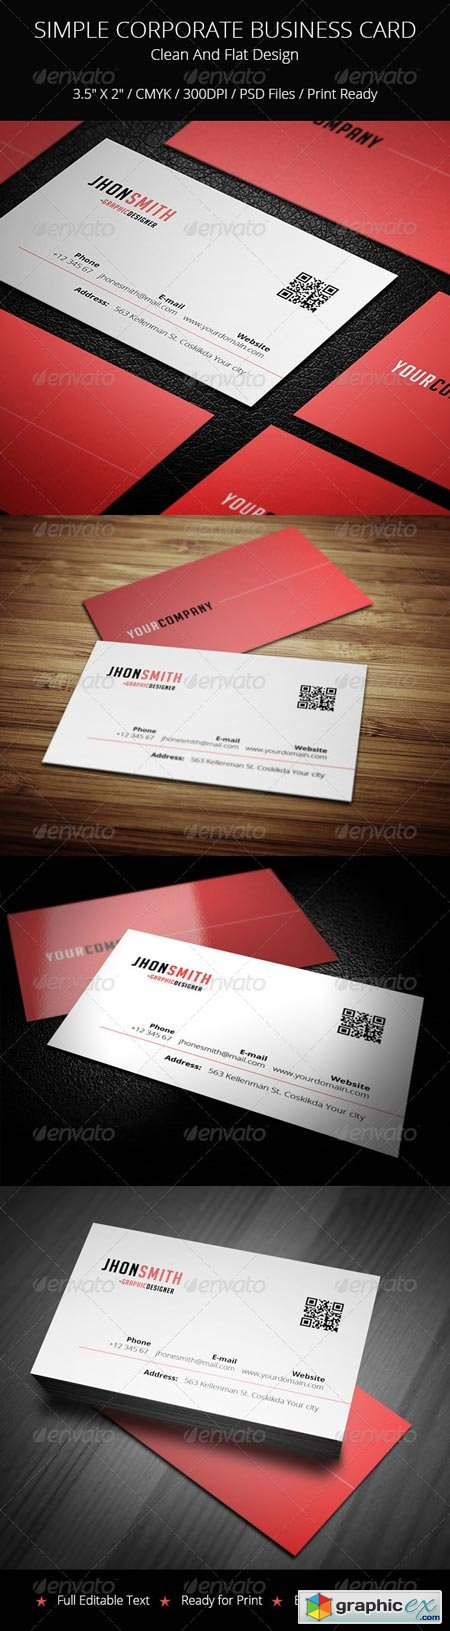 Corporate Business Card 6584995